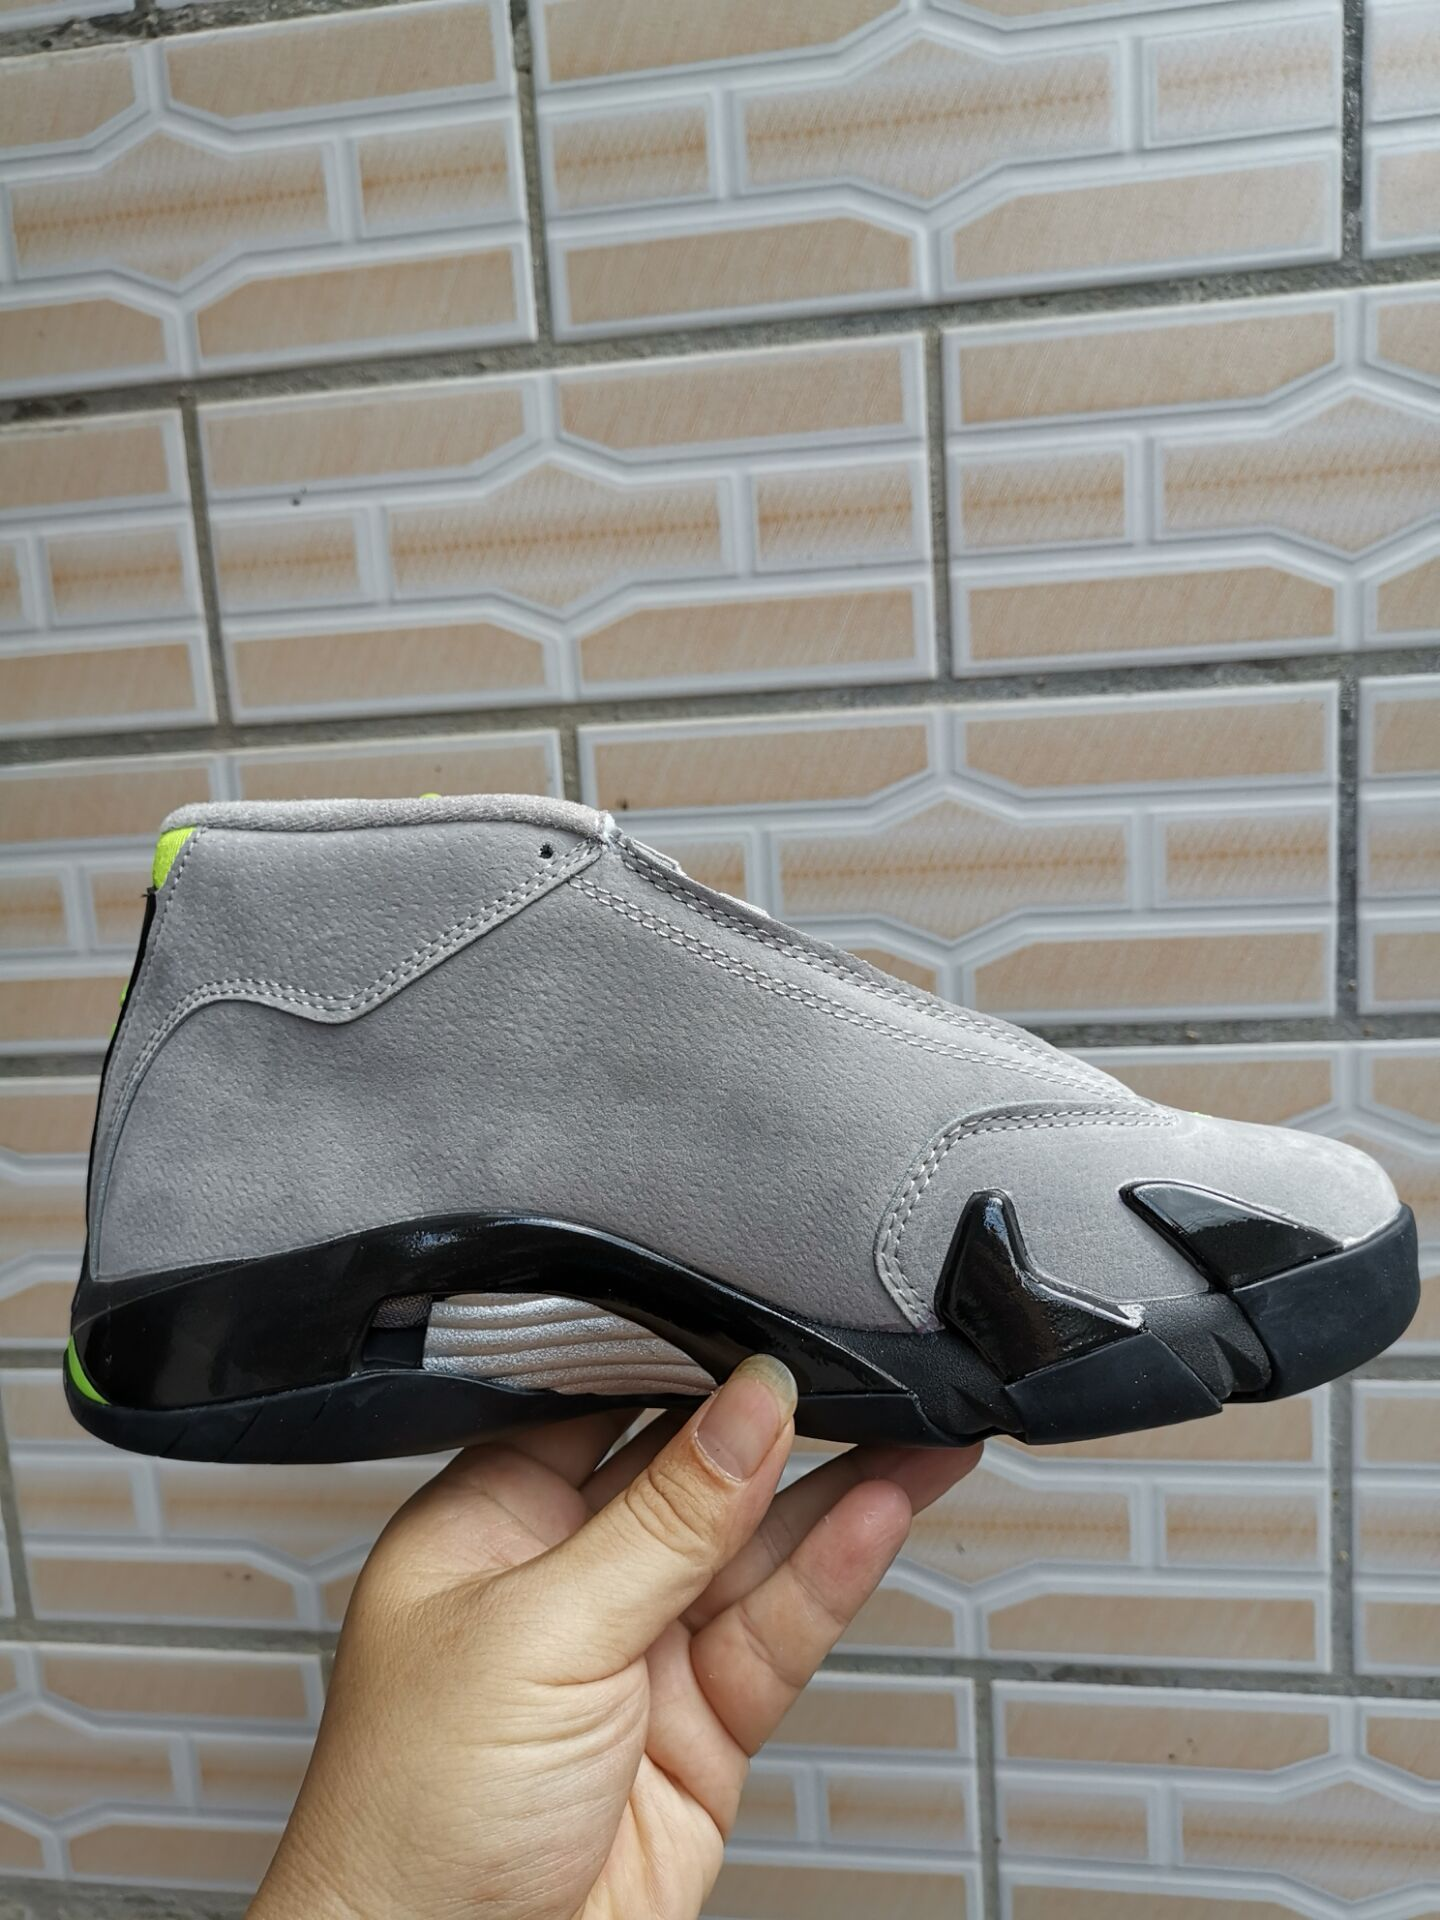 2019 Air Jordan 14 Grey Black Yellow Shoes